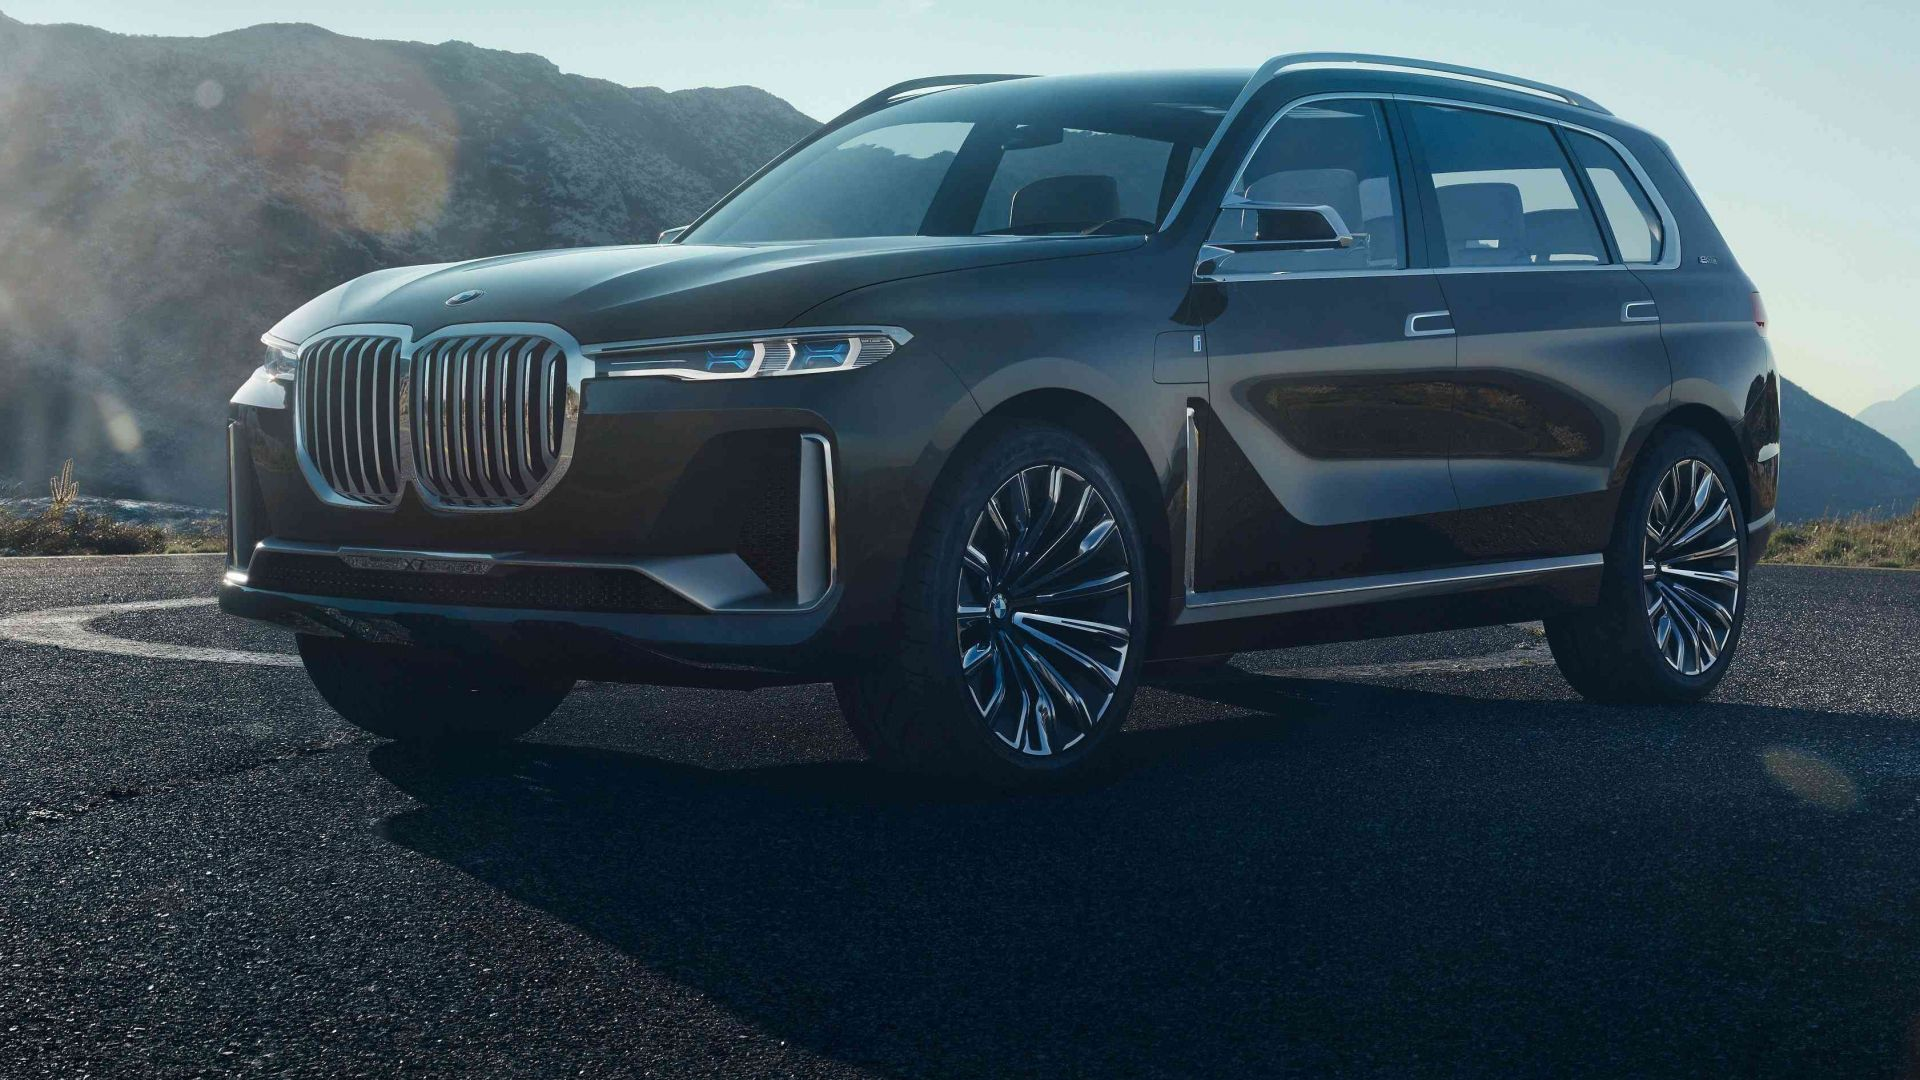 BMW X7, 2018 Cars, 4k (horizontal)